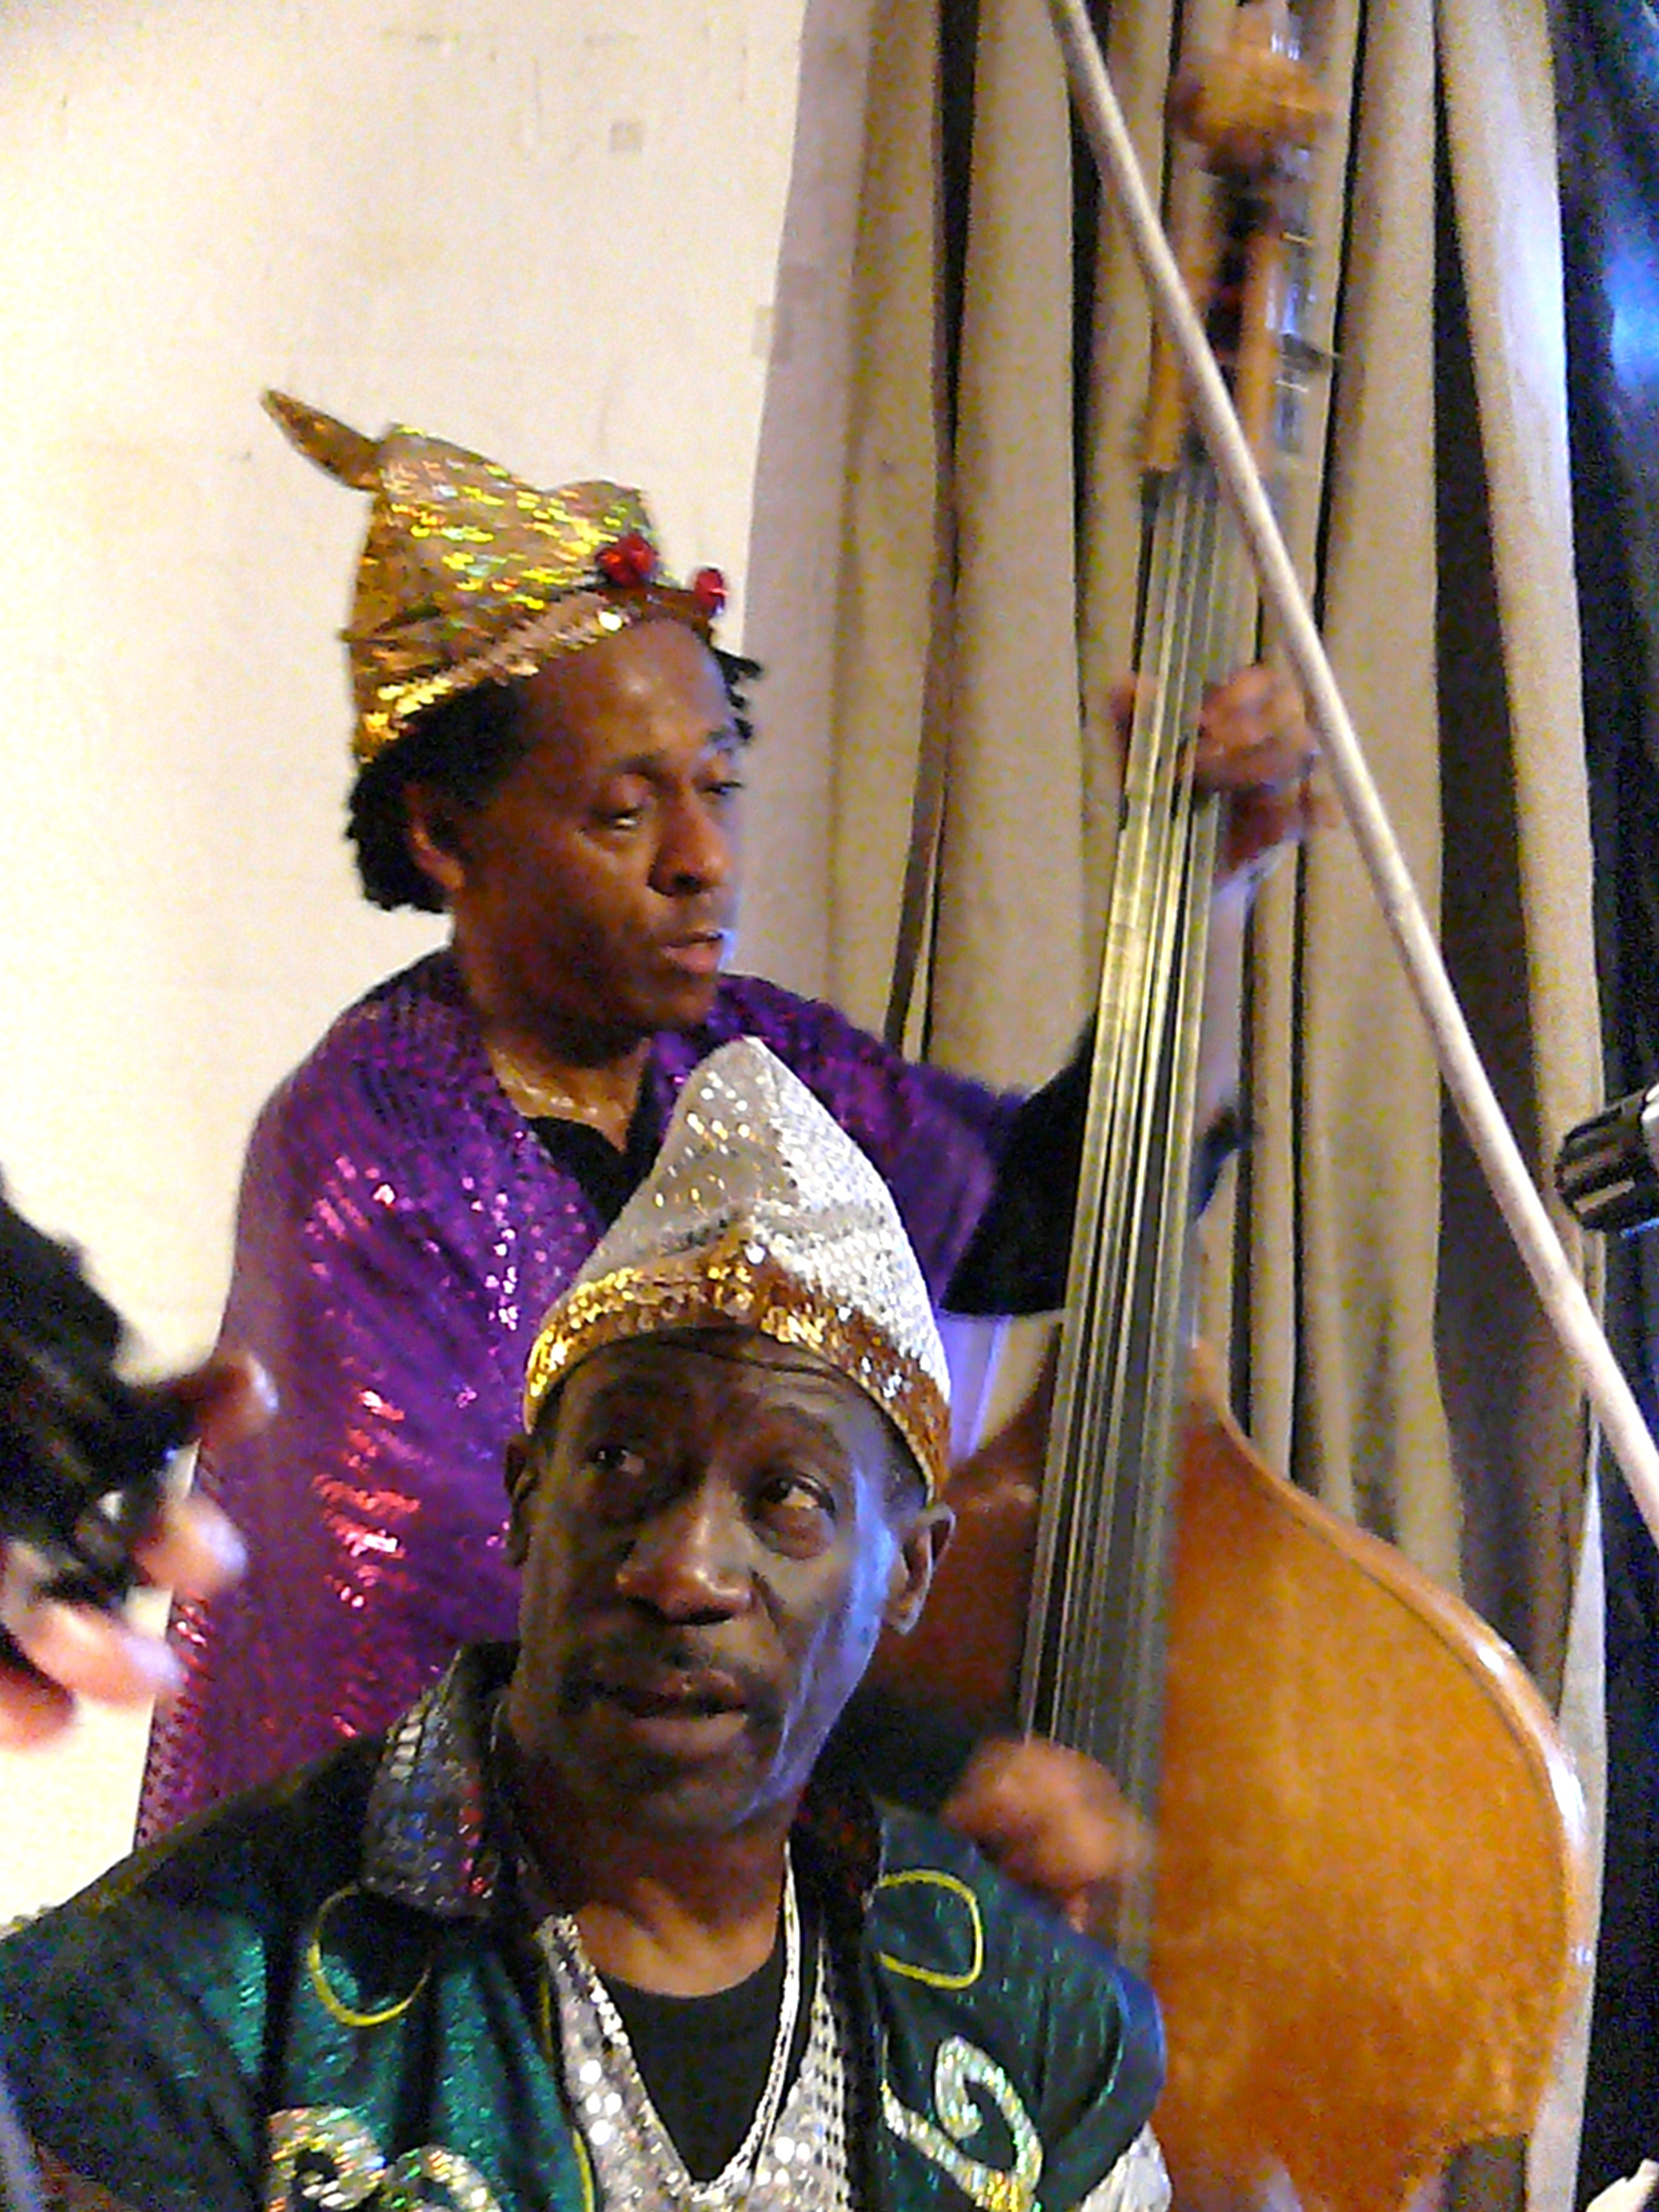 Juni Booth and Michael Ray at Cafe Oto London in April 2010 with the Sun Ra Arkestra